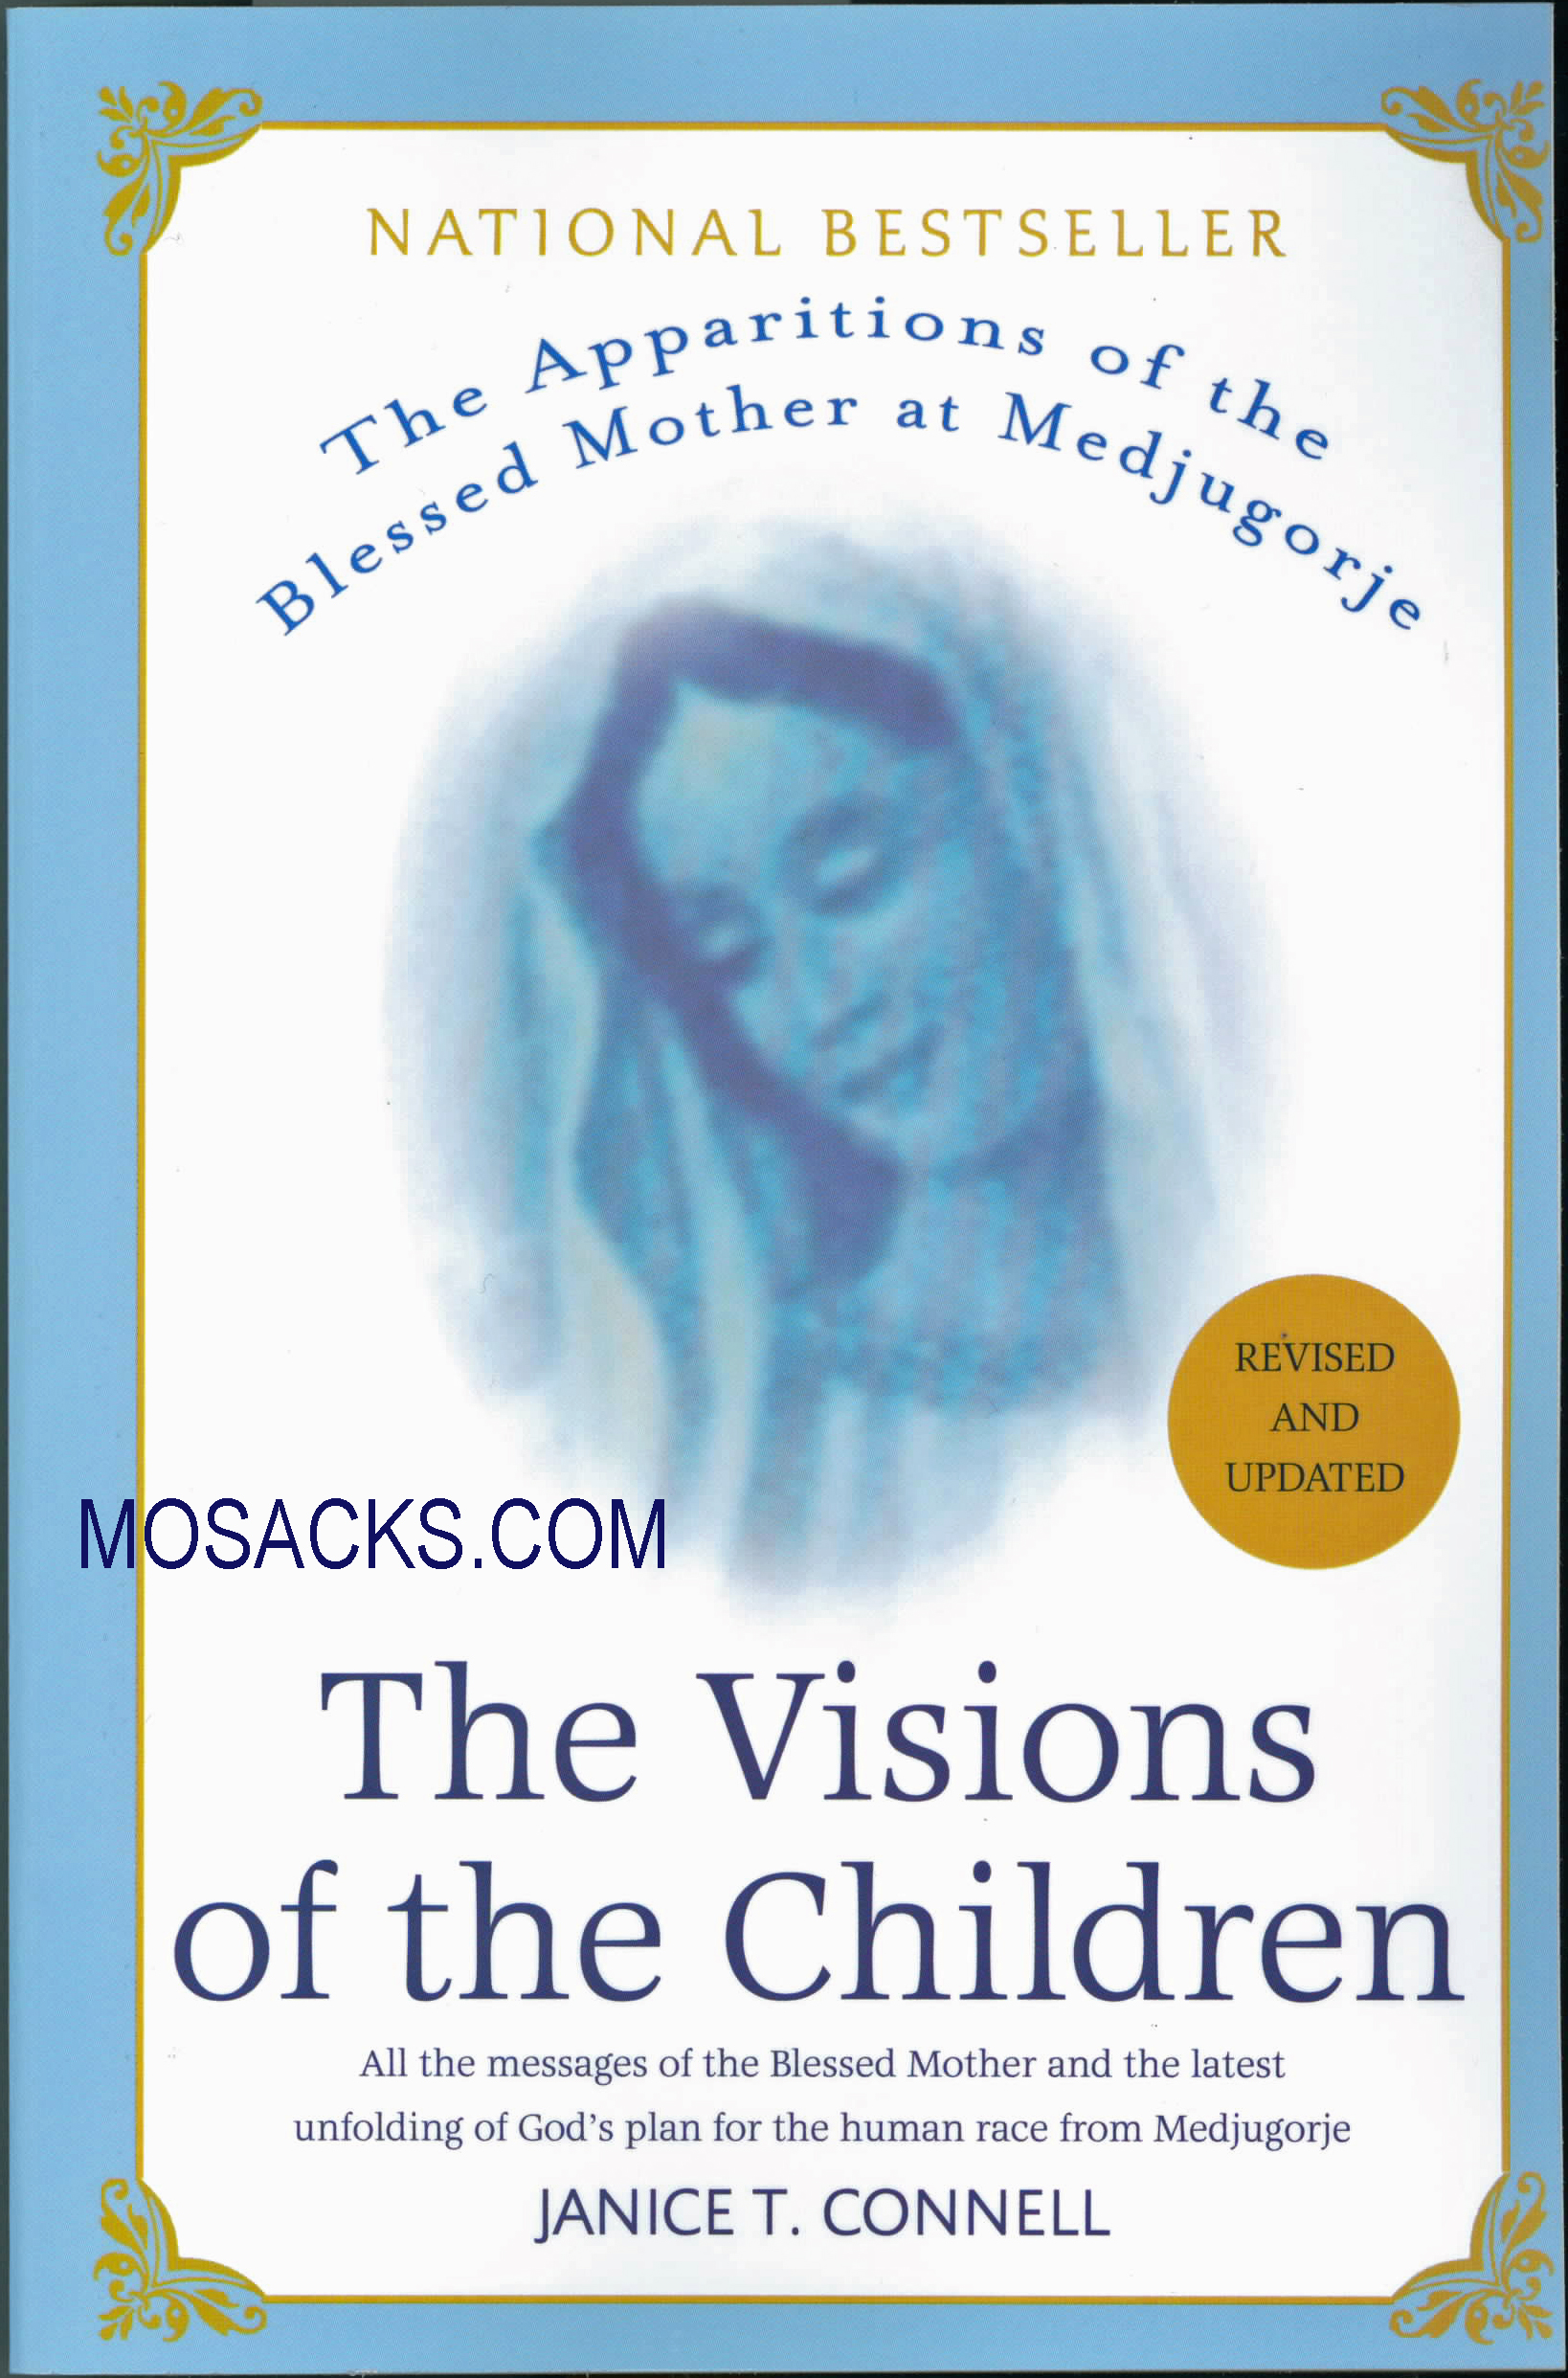 The Visions of the Children by Janice T. Connell 108-9780312361976 a Medjugorje book